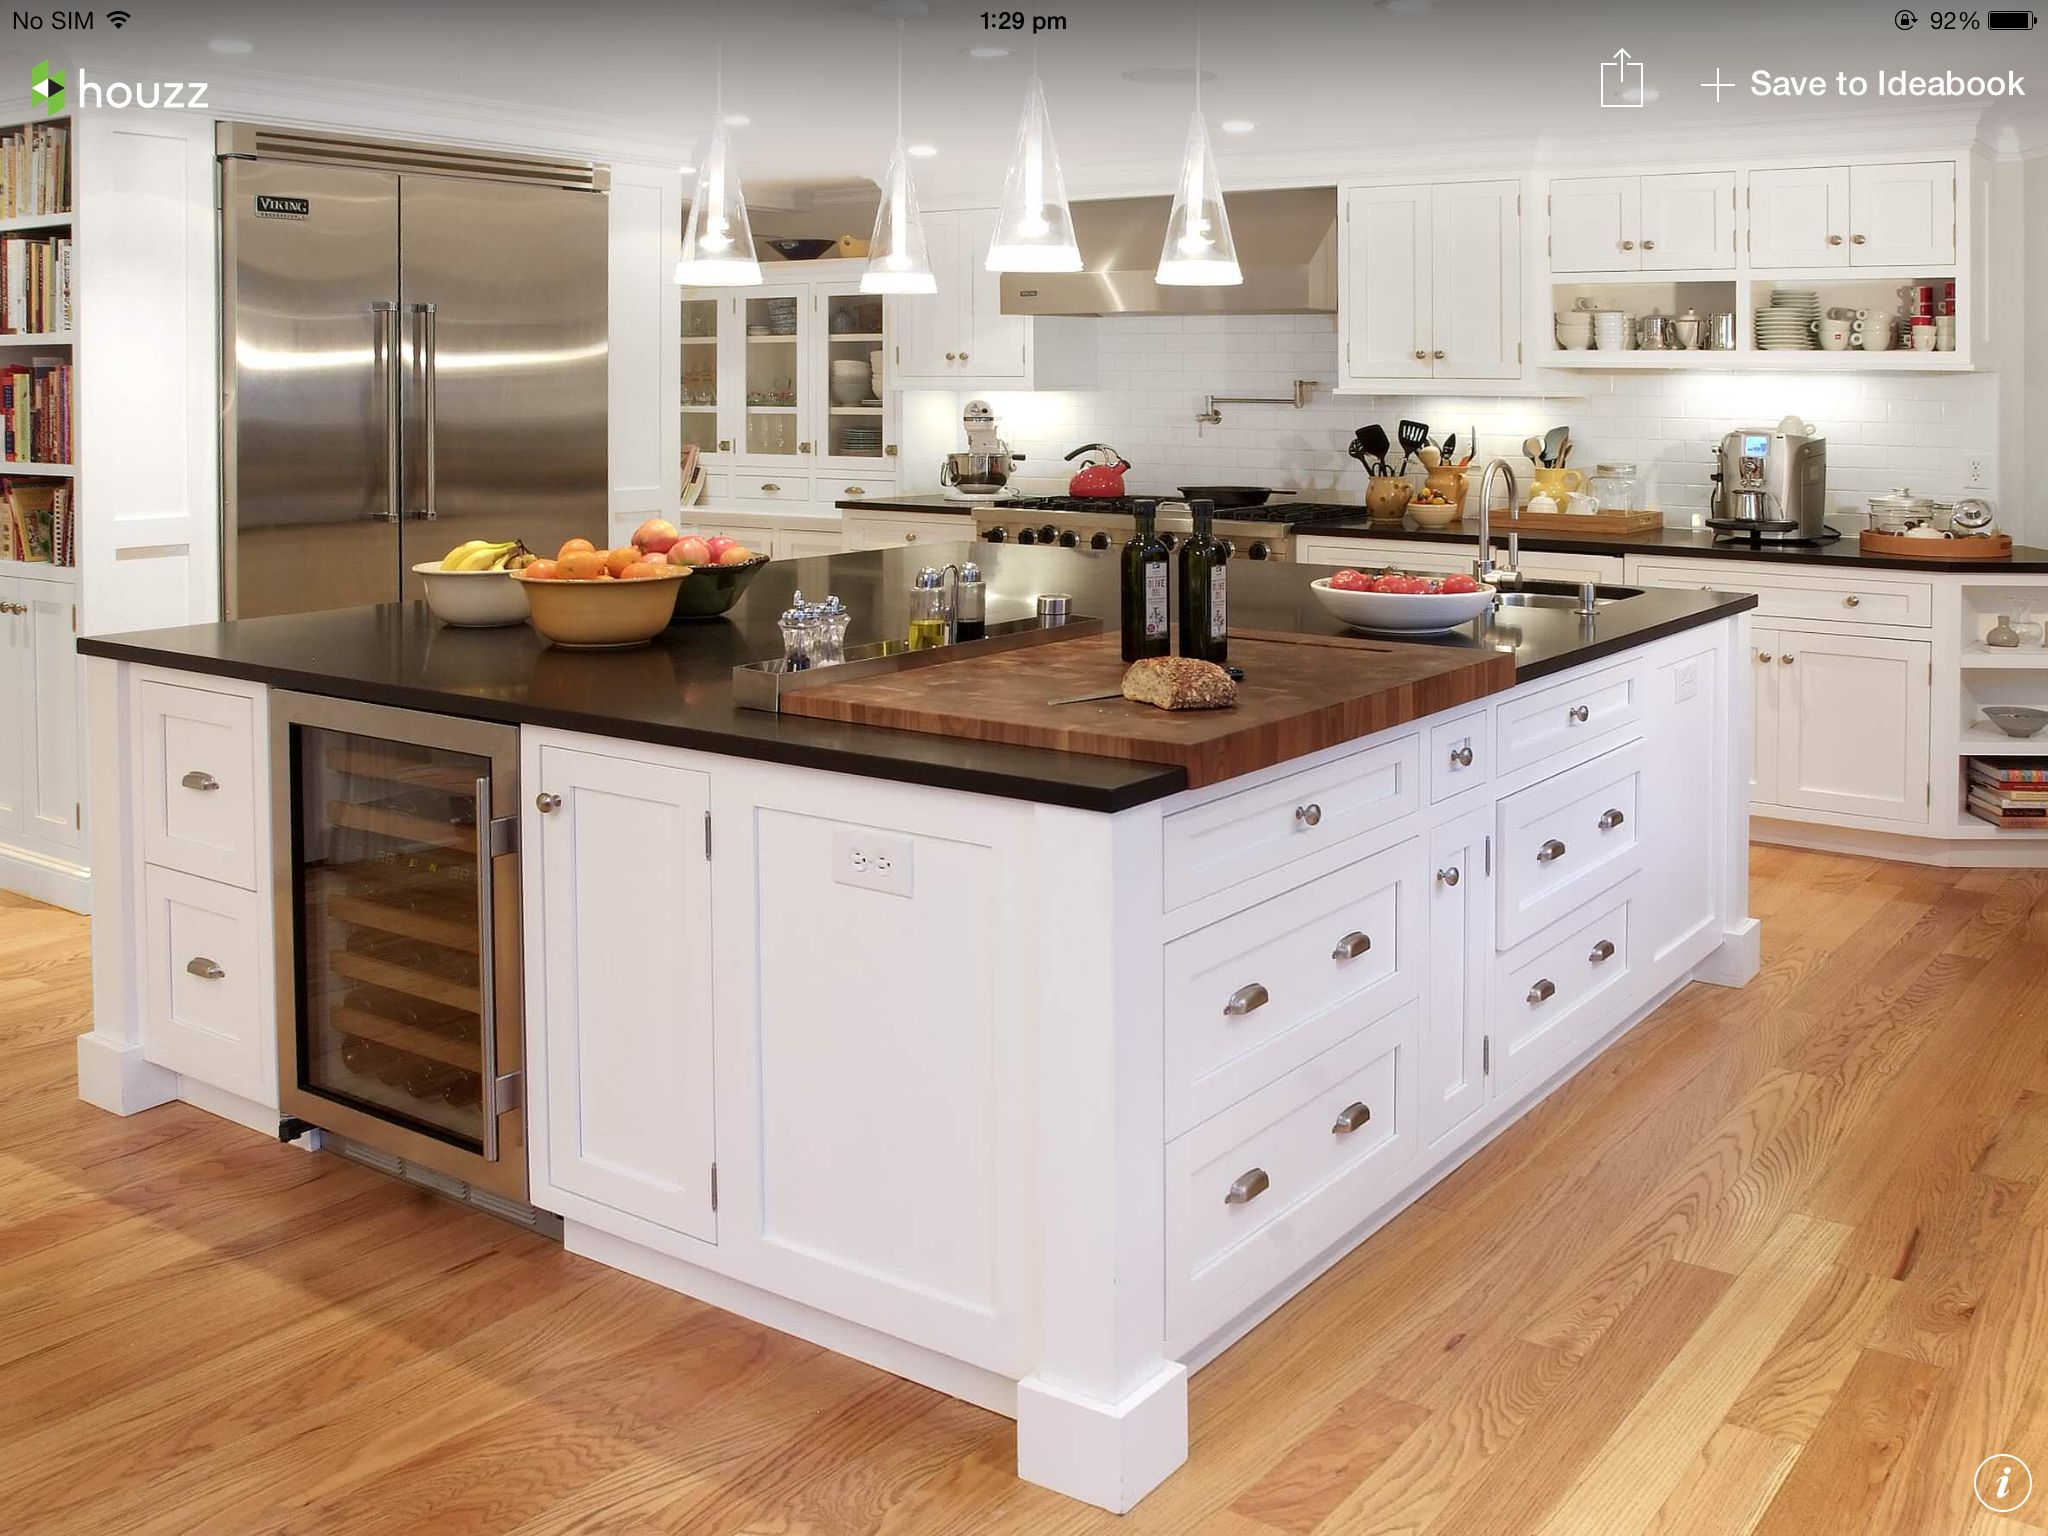 Love The Chopping Board In The Bench Top The Big Fridge And The Wine Fridge Custom Kitchen Island Stools For Kitchen Island Square Kitchen